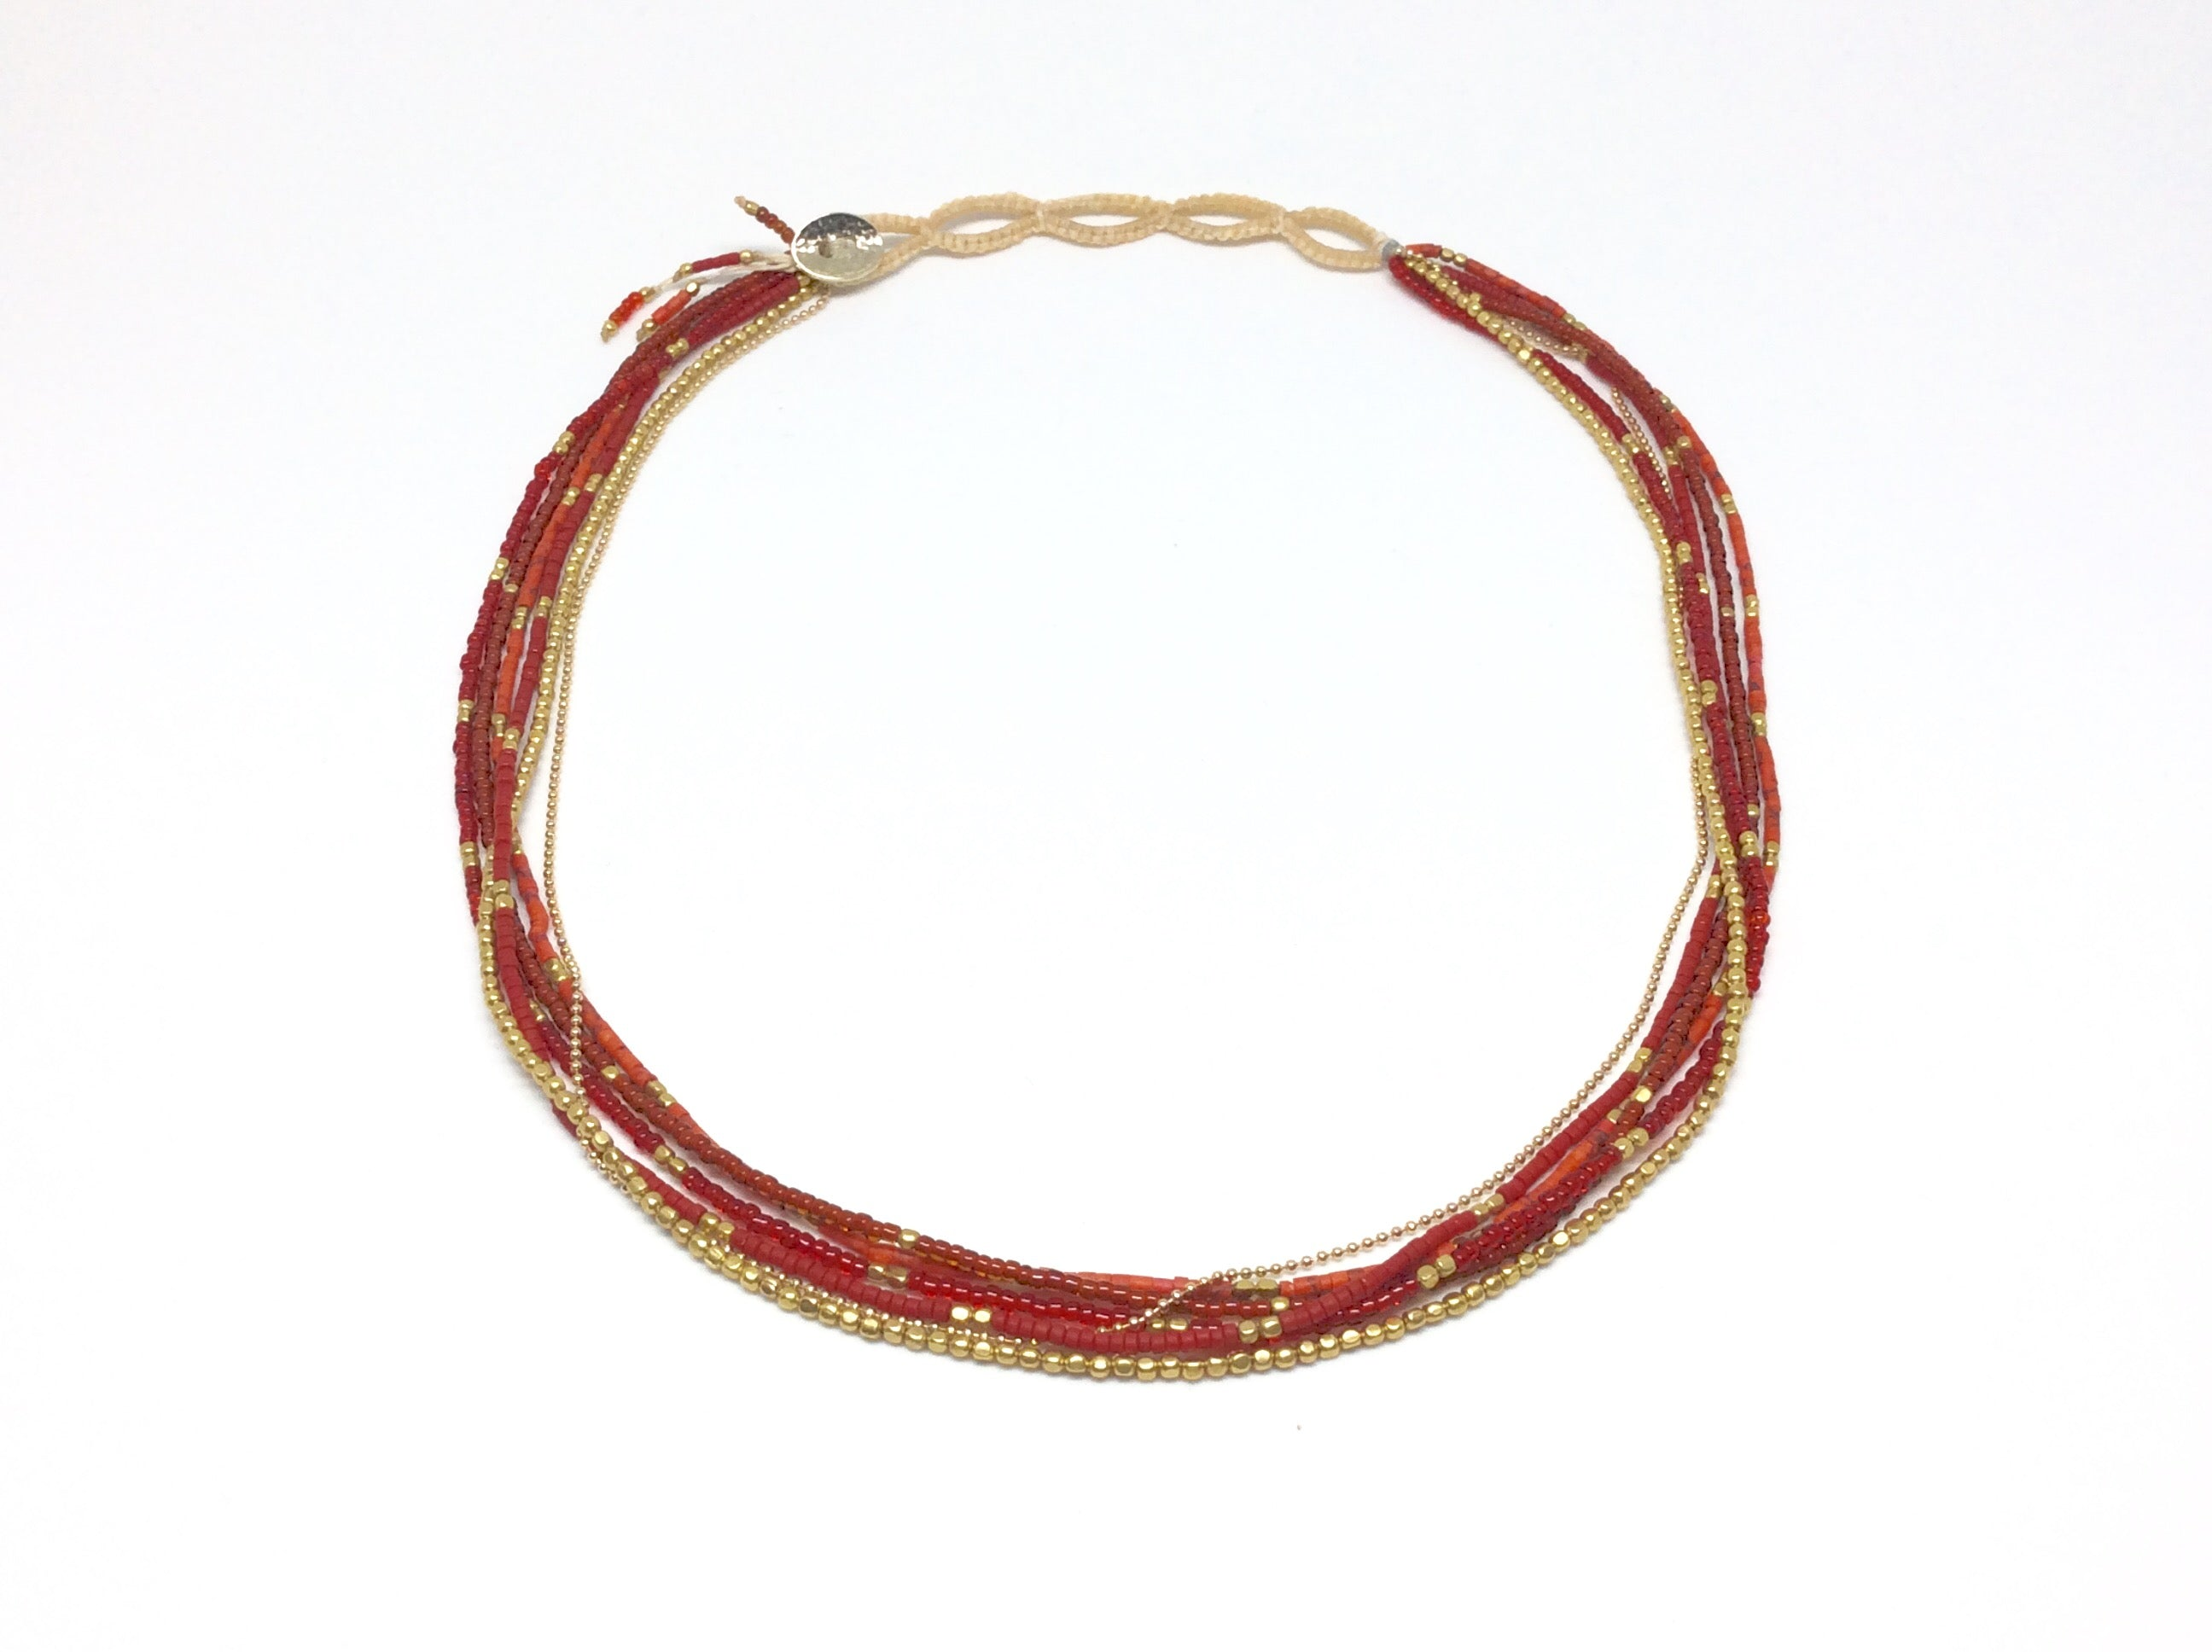 FIRE Beads and Brass Linen Wrap Bracelet